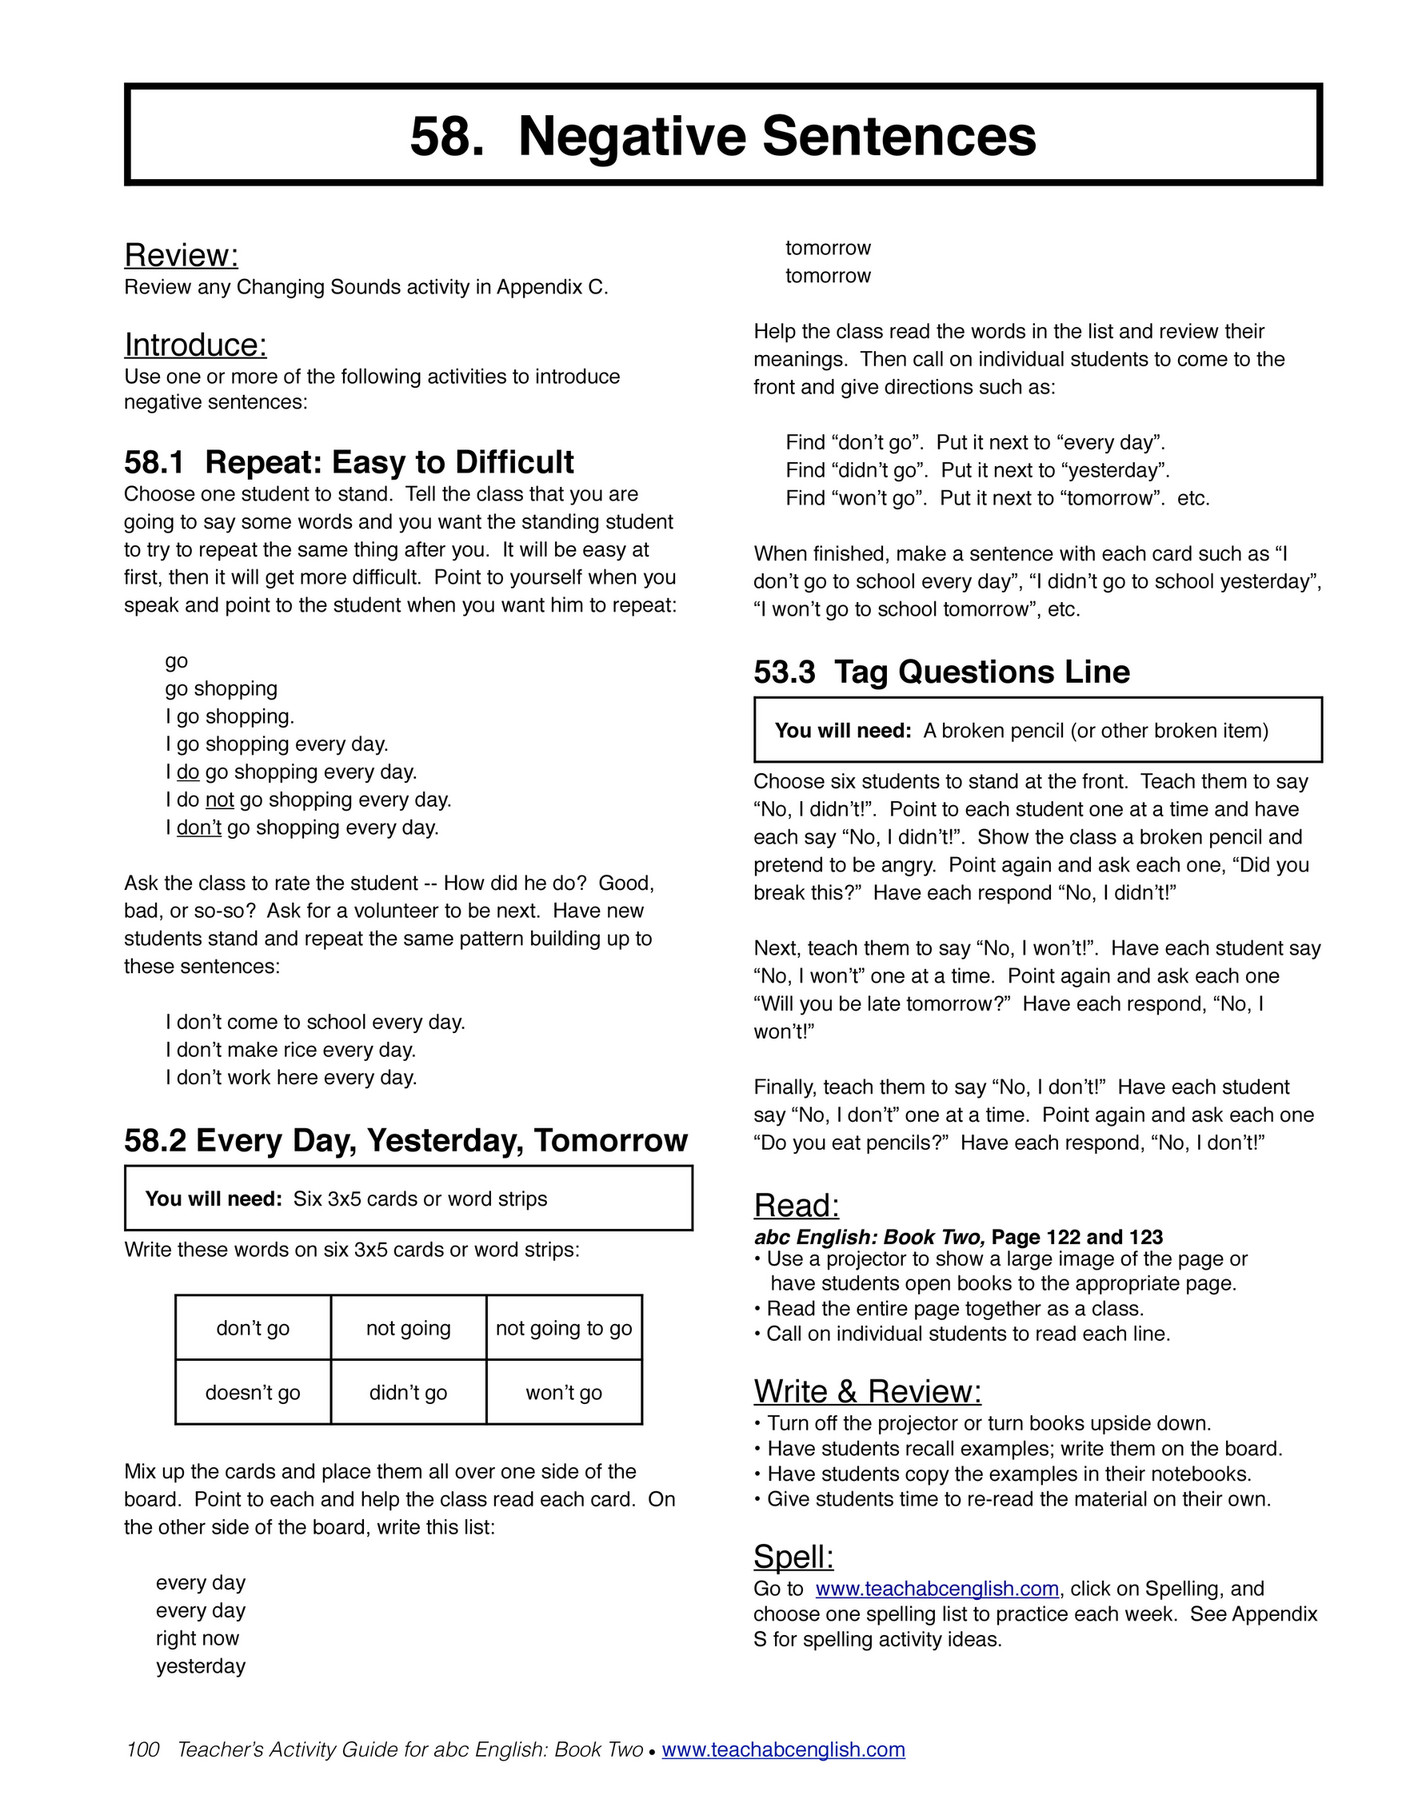 easy english readers teachersactivityguide2 page 100 101 100 teacher s activity guide for abc english book two ● teachabcenglish com